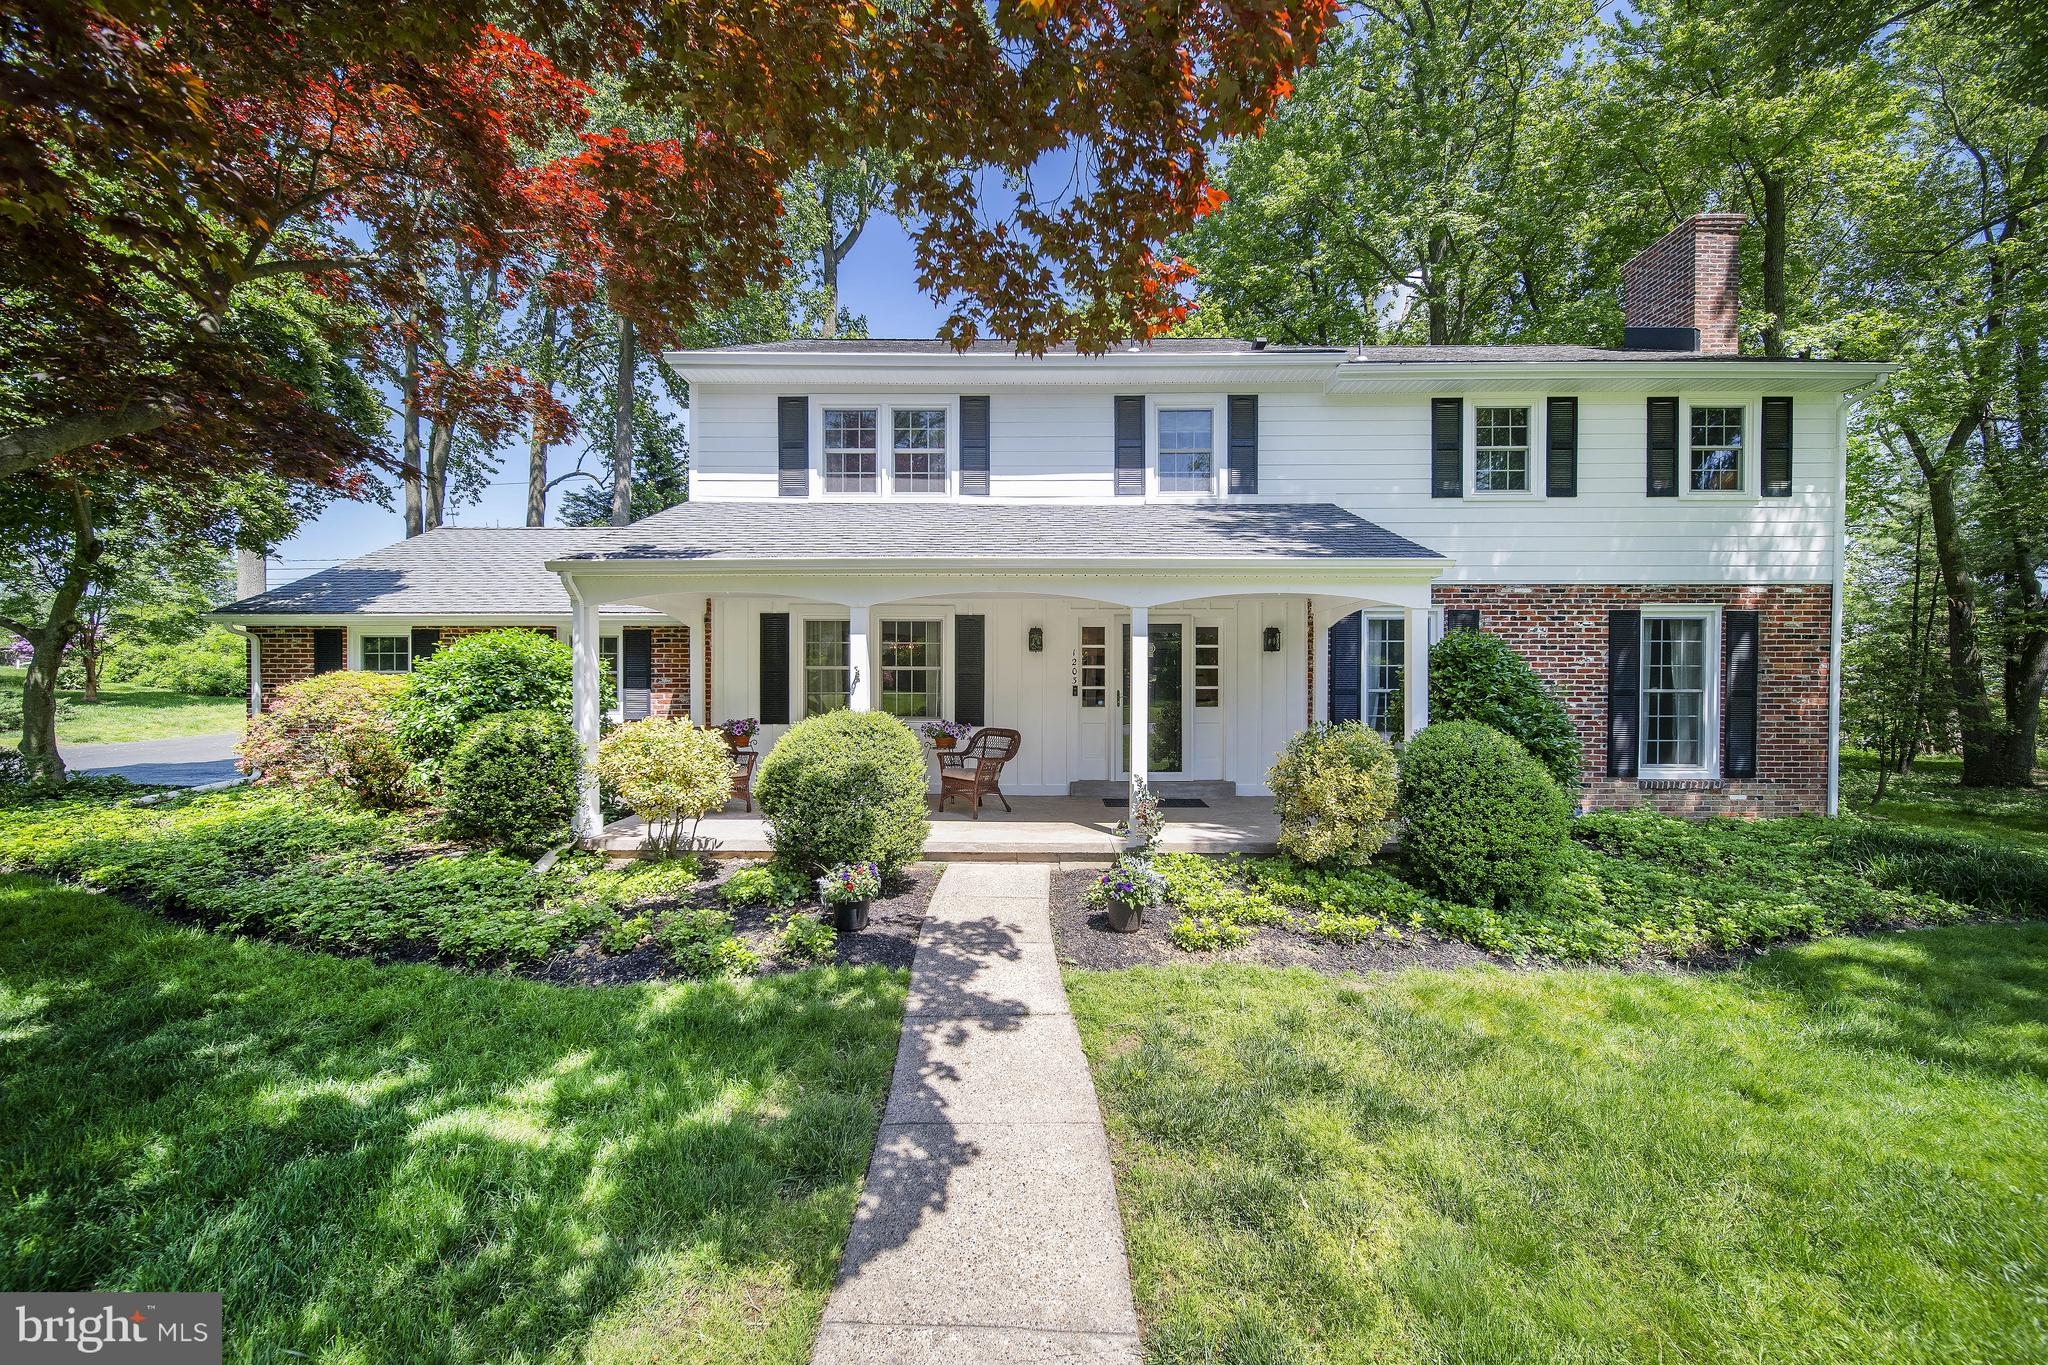 """Visit this home virtually: http://www.vht.com/434074646/IDXS - Proudly presenting 1203 Chadwick Road in N. Wilmington's premier neighborhood....""""WELSHIRE""""  This impressive home has recently had over $230,000 in custom renovations including a 14x10 first floor office/bedroom.  A welcoming 26x8 covered sitting porch and new James Hardie Plank siding greets you. As you enter the center hall foyer beautiful walnut floors through out and a sophisticated color palette follows.  The dining room features crown molding and a striking crystal Potter Barn chandelier. Two floor to ceiling windows and a wood burning fireplace and crown molding complete the living room which opens to the family room. A custom wall of built-ins in Polar Bear white, indirect lighting, and a french door that leads to the deck enhance the family room. This open floor plan concept from the family room to the kitchen is a special space where family and friends can gather to accommodate today's life style. A spectacular kitchen with its over sized island with plenty of storage and three eye catching pendent lights offers a huge space for family meals or entertaining. The abundance of white cabinets, Pelican white quartz counters and glass back splash set the stage for this high end kitchen. New six burner professional gas range, new Kitchen Aid refrigerator and dish washer along with a double oven complete the gourmet kitchen.  Conveniently off the kitchen the addition encompasses a mudroom with custom built-in cubbies which leads to the half bath (has a rough-in) access to the deck and the office/bedroom. Second floor features a spacious unsuite and an expanded luxurious bath. Amenities include a double sink and vanity in Carrera polished quartz and a stunning10x3 Carrera marble shower featuring dual shower fixtures. Three additional generously bedrooms and a renovated hall bath and laundry complete the upper level.2020 basement renovation includes a 25x22 media room with egress and a 12x12 work out ro"""